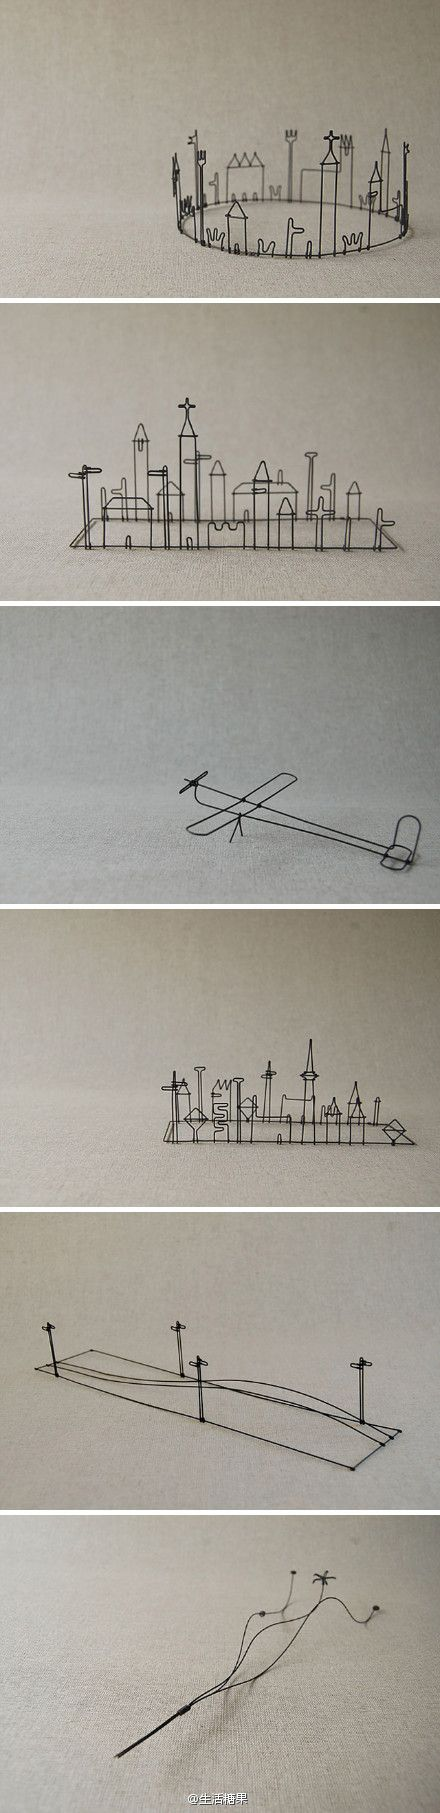 creative and simple wire sculpture